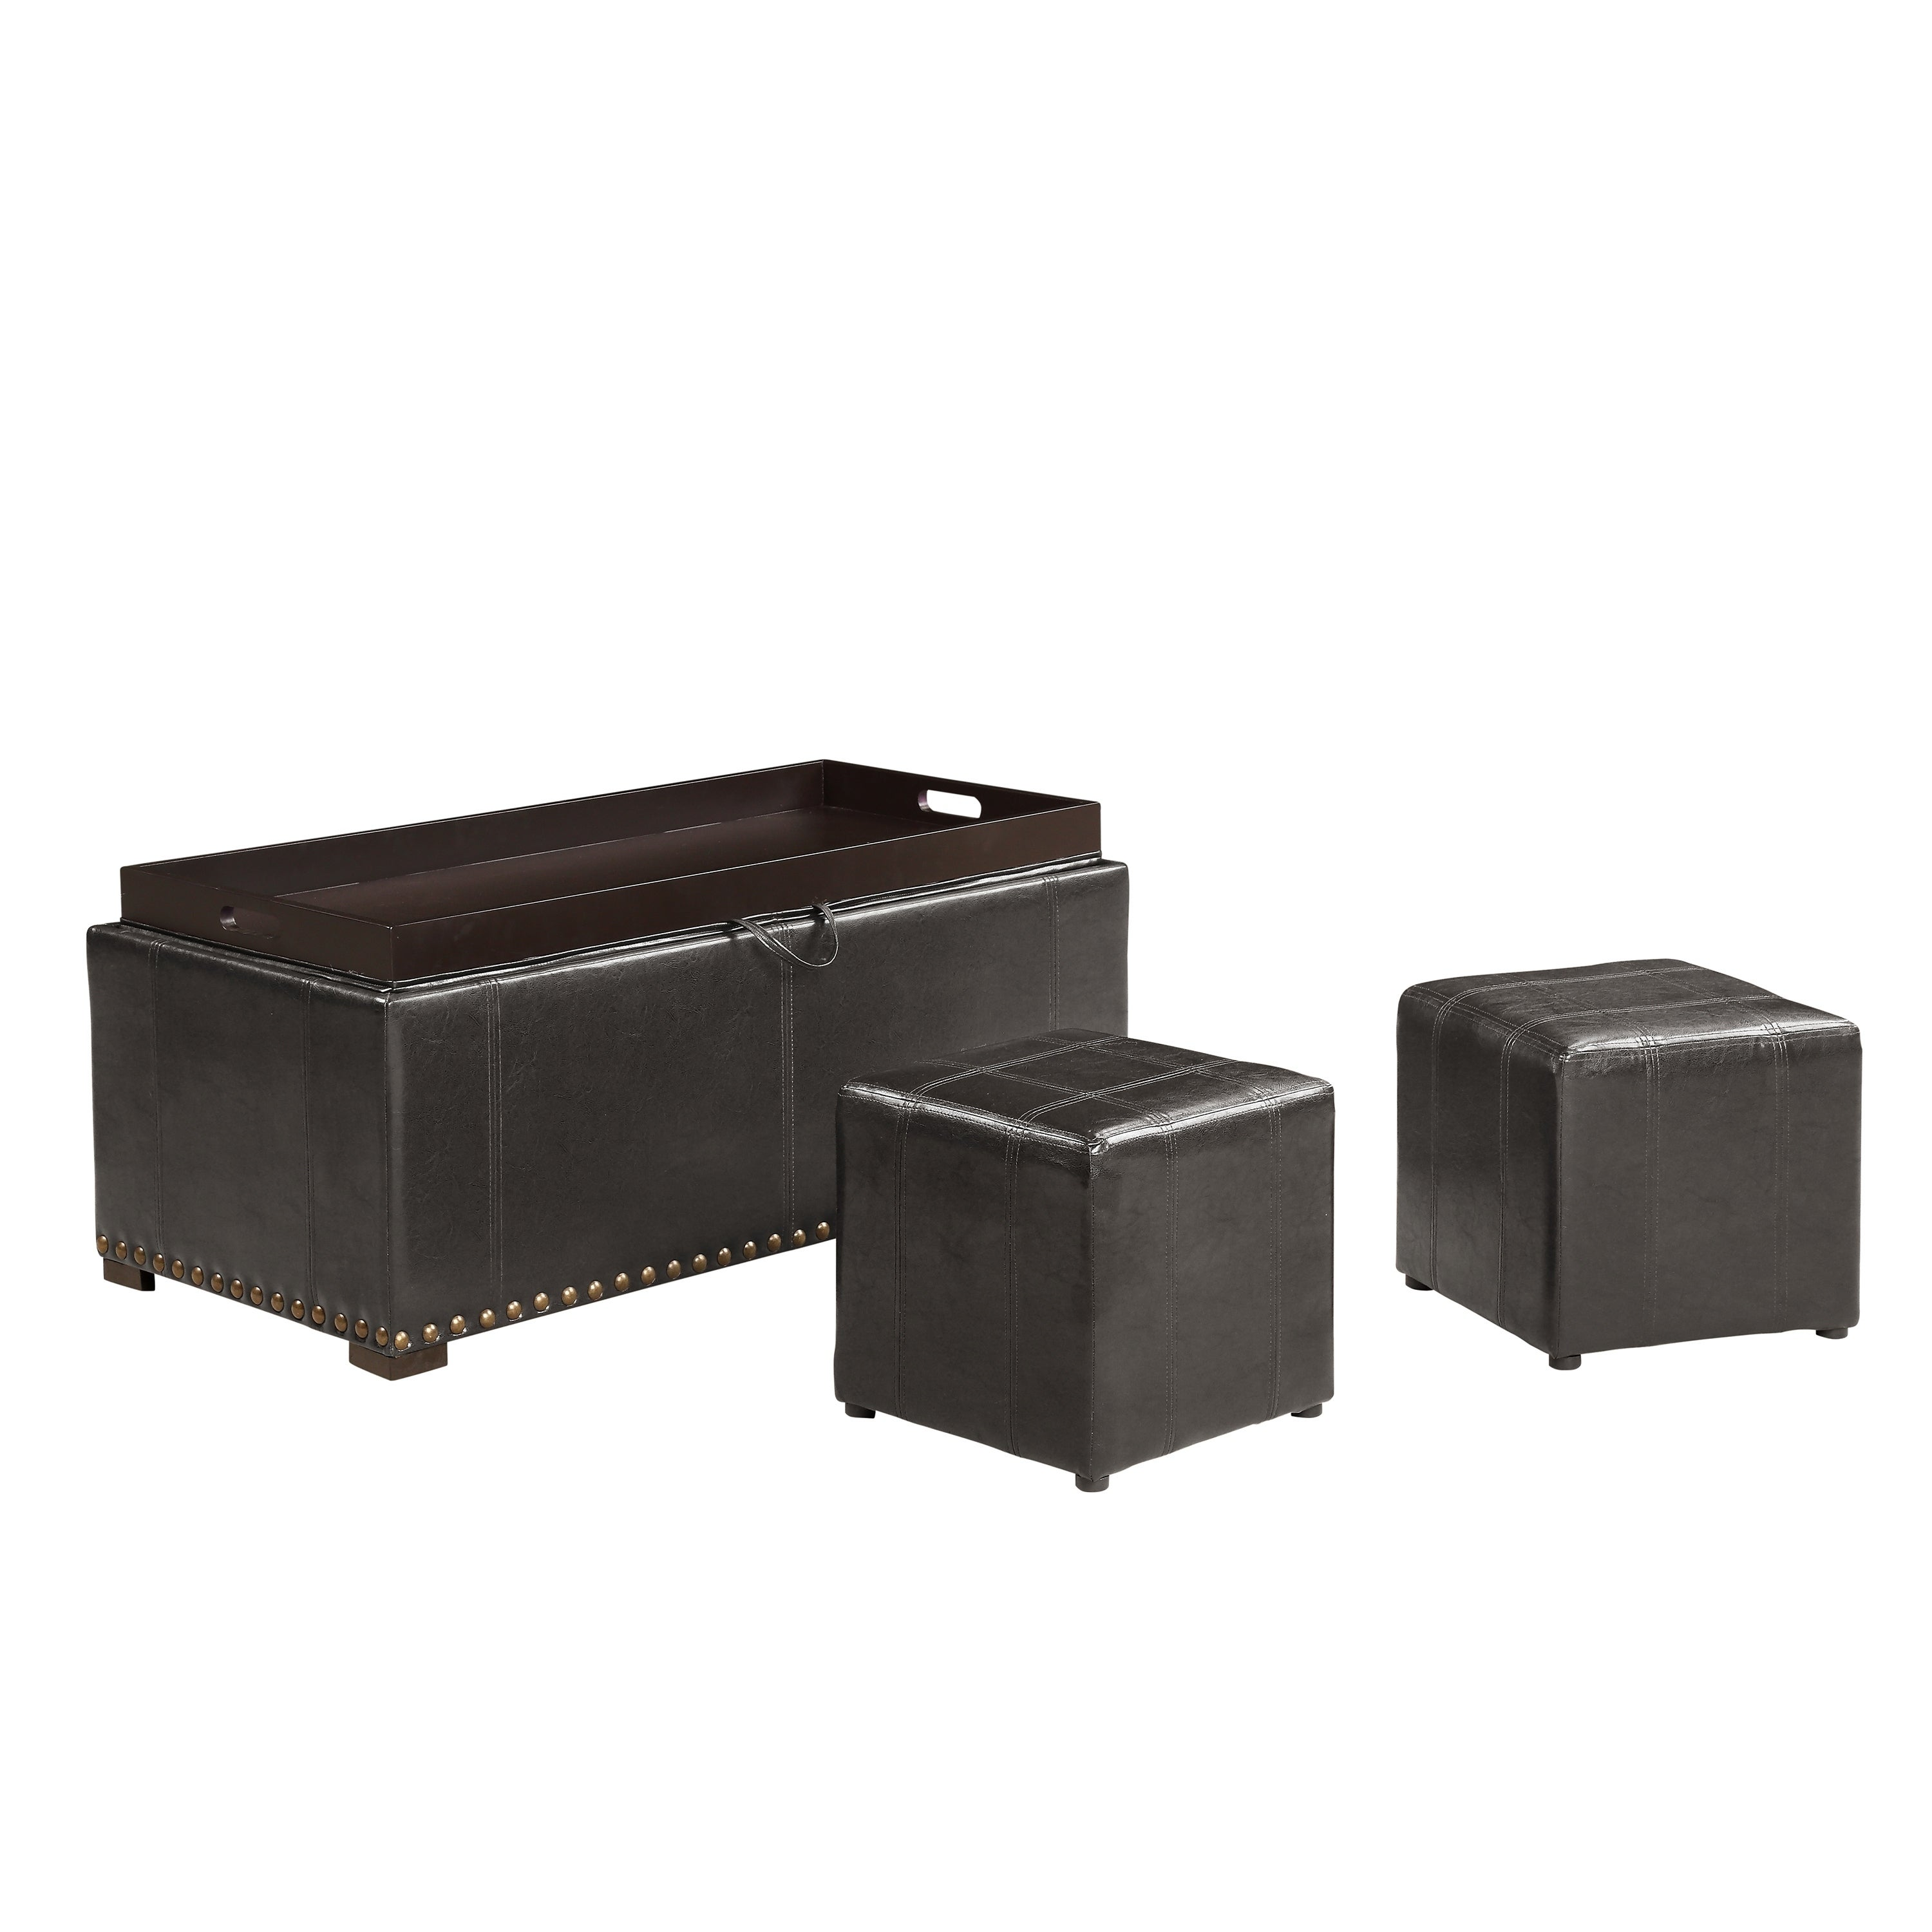 Shop Leather Nailhead Storage Ottoman Bench Cube Set   On Sale   Free  Shipping Today   Overstock.com   22701511